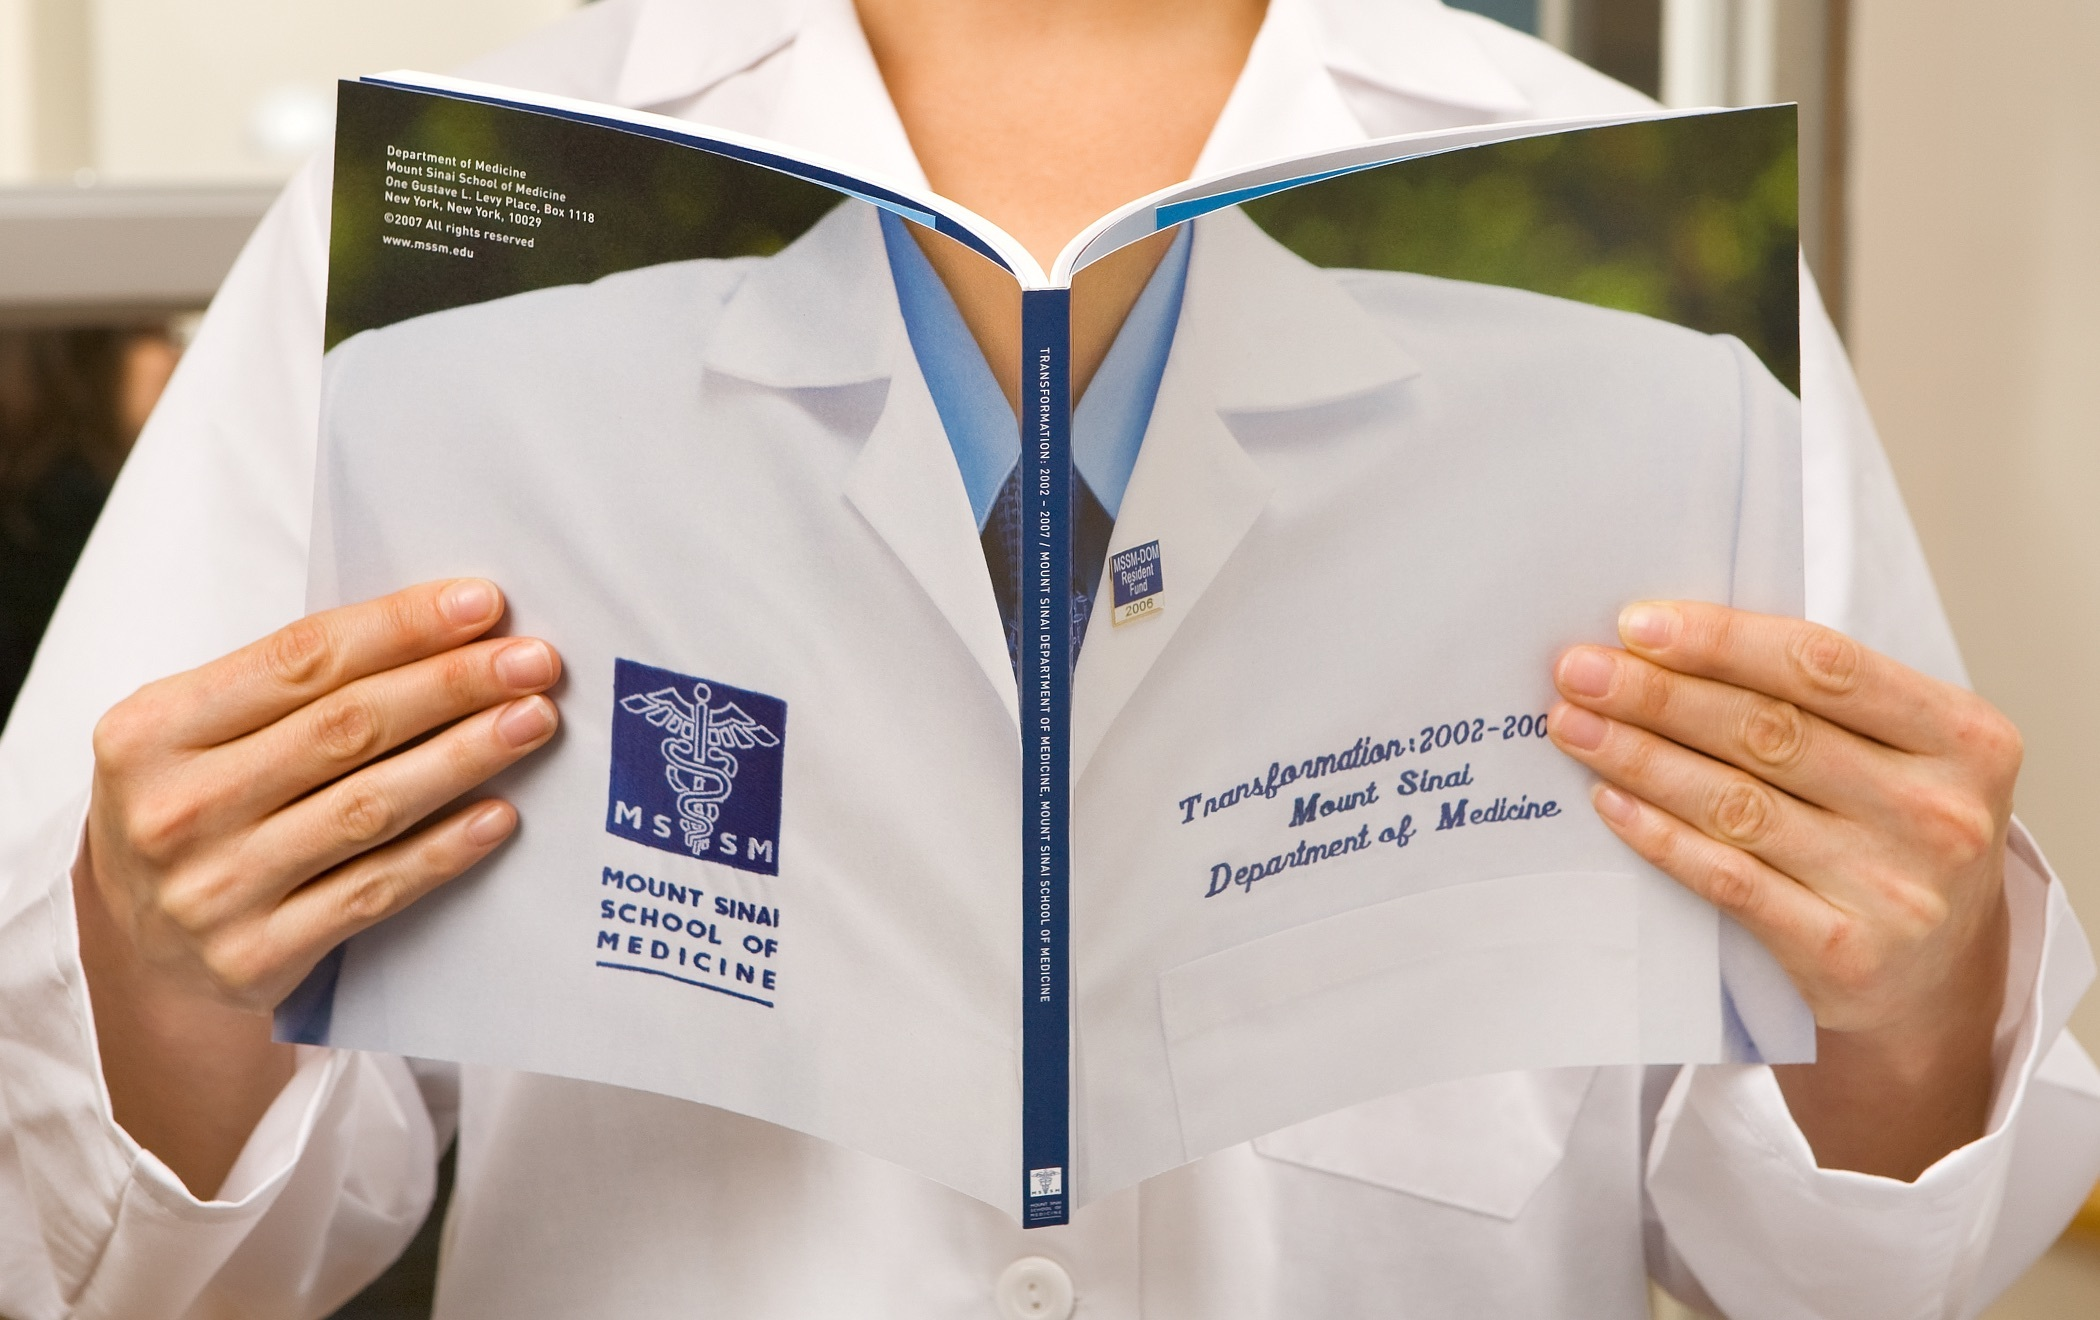 Hands holding open a Mount Sinai School of Medicine yearbook with an image of lab coat spread across the front and back cover.